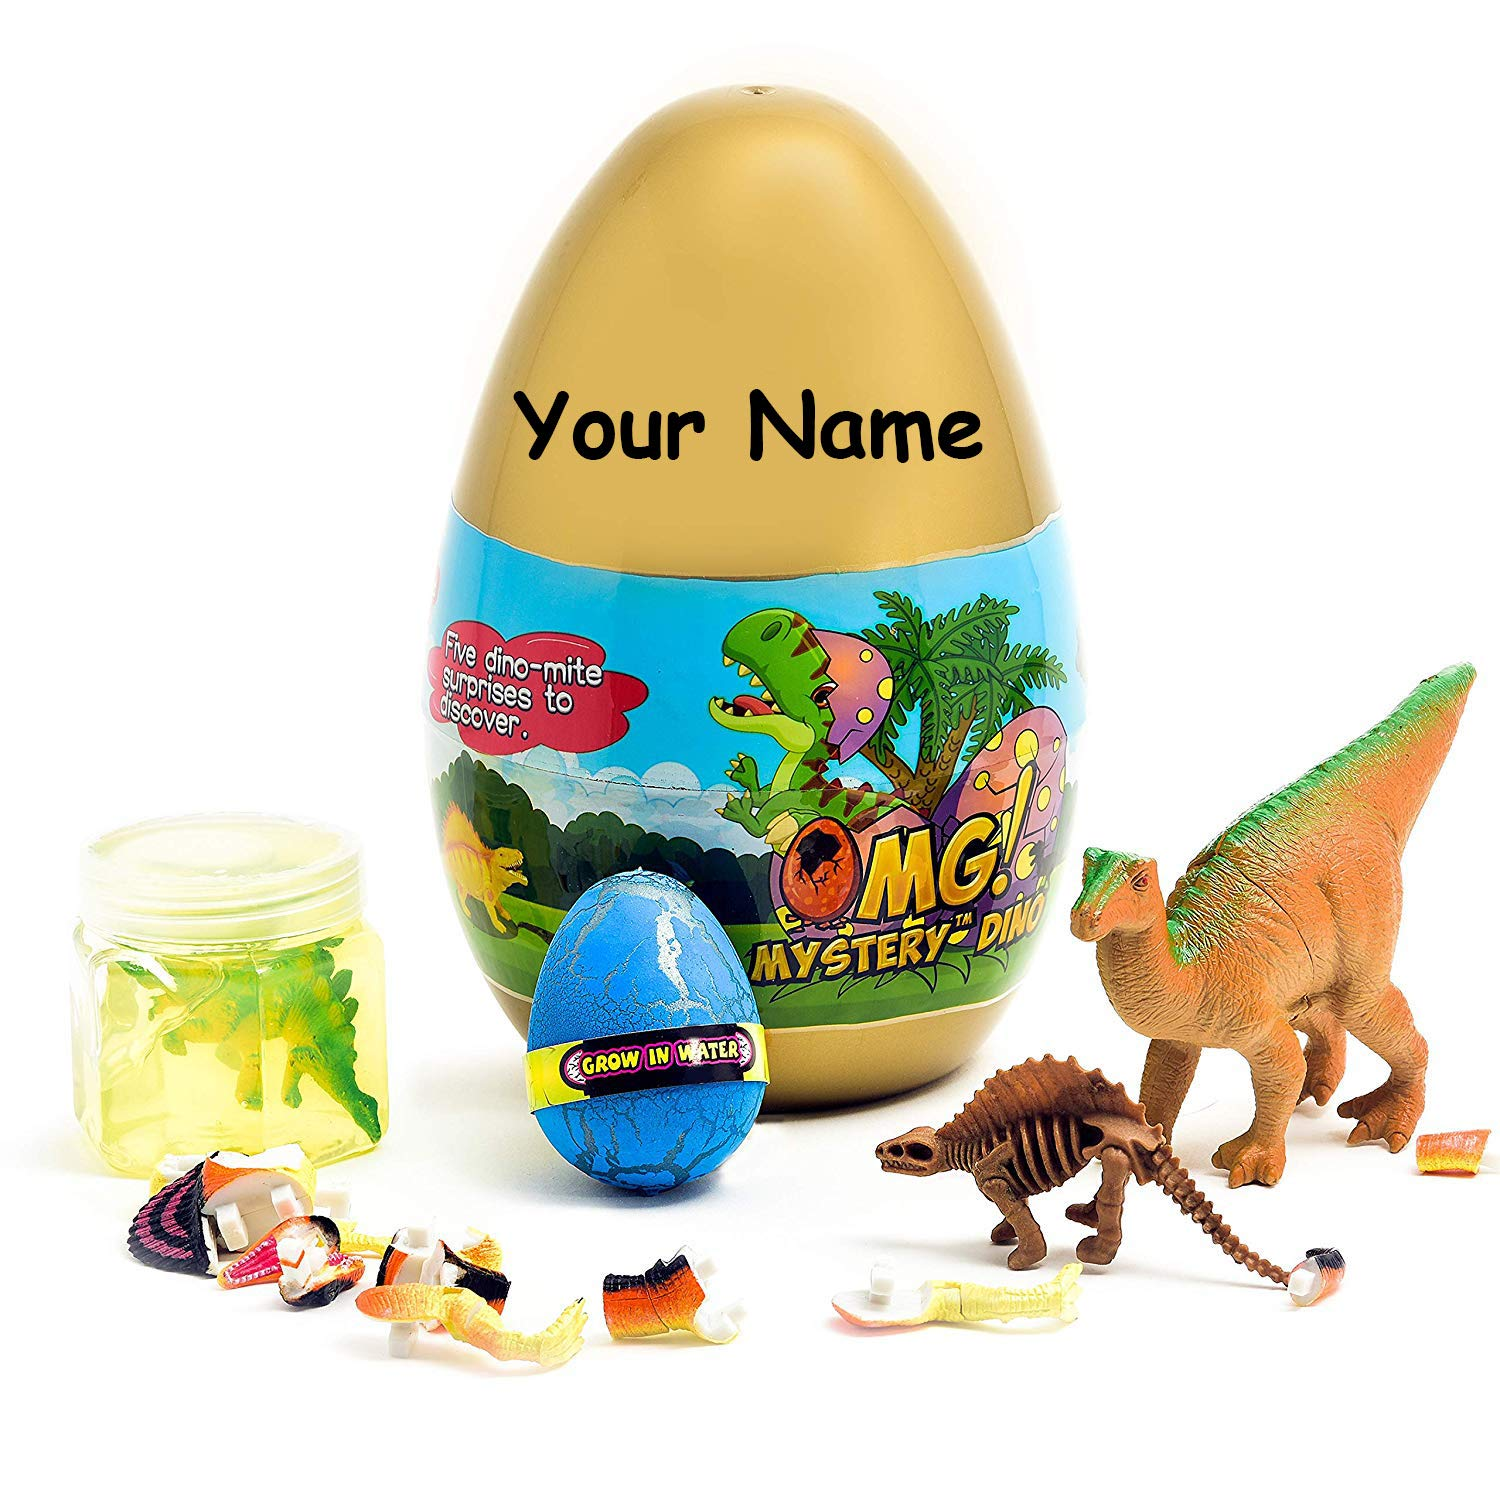 O.M.G! Personalized Jurassic Dinosaur 5 Surprise Dino Egg Filled with Puzzles, Dino Action Figures, Slime, Fossils, Fun, and More by O.M.G!